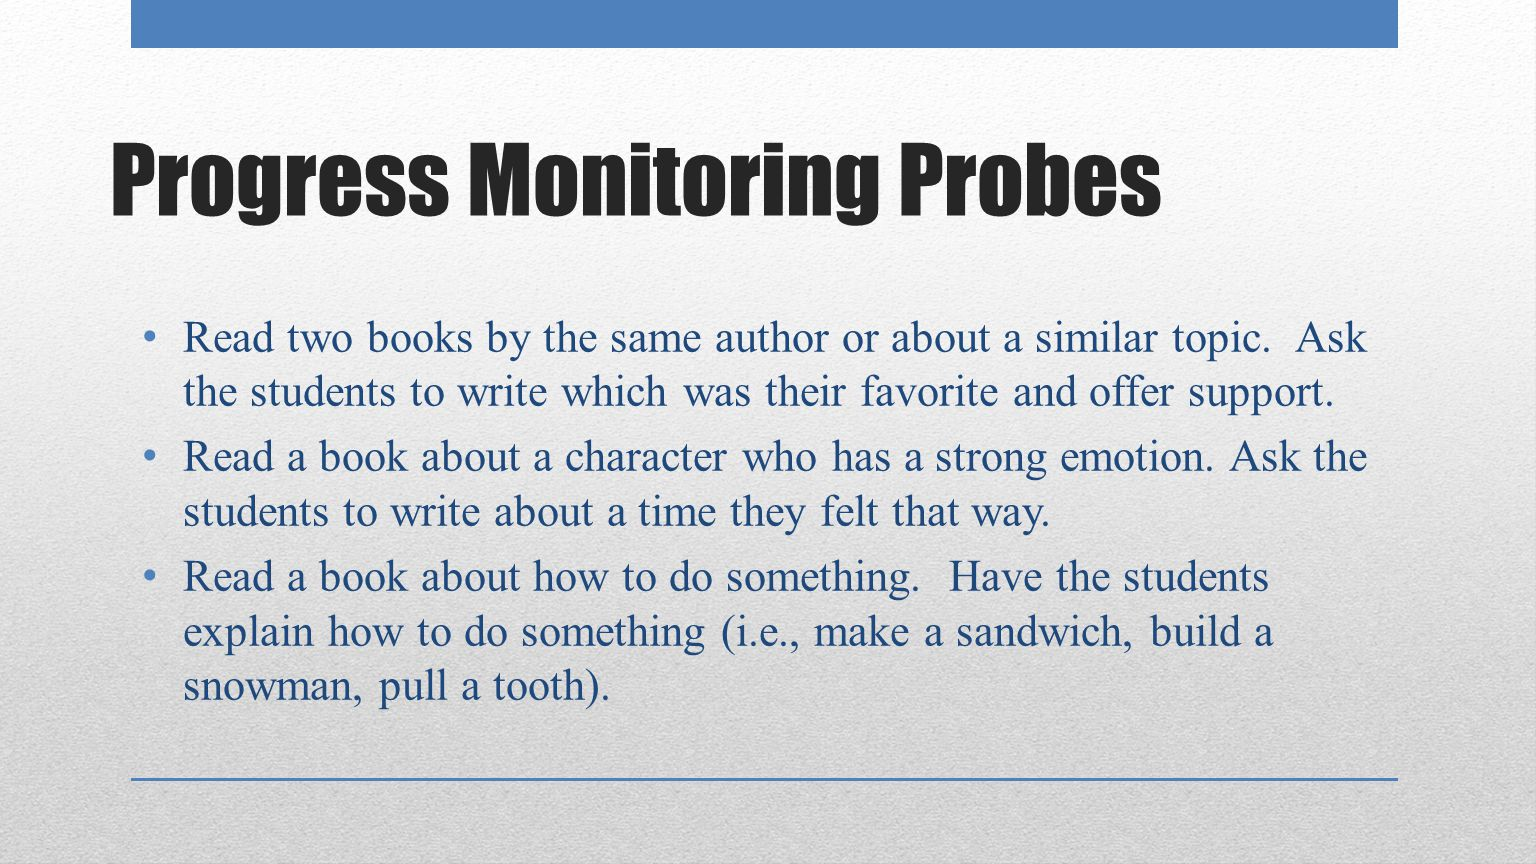 Progress Monitoring Probes Read two books by the same author or about a similar topic.